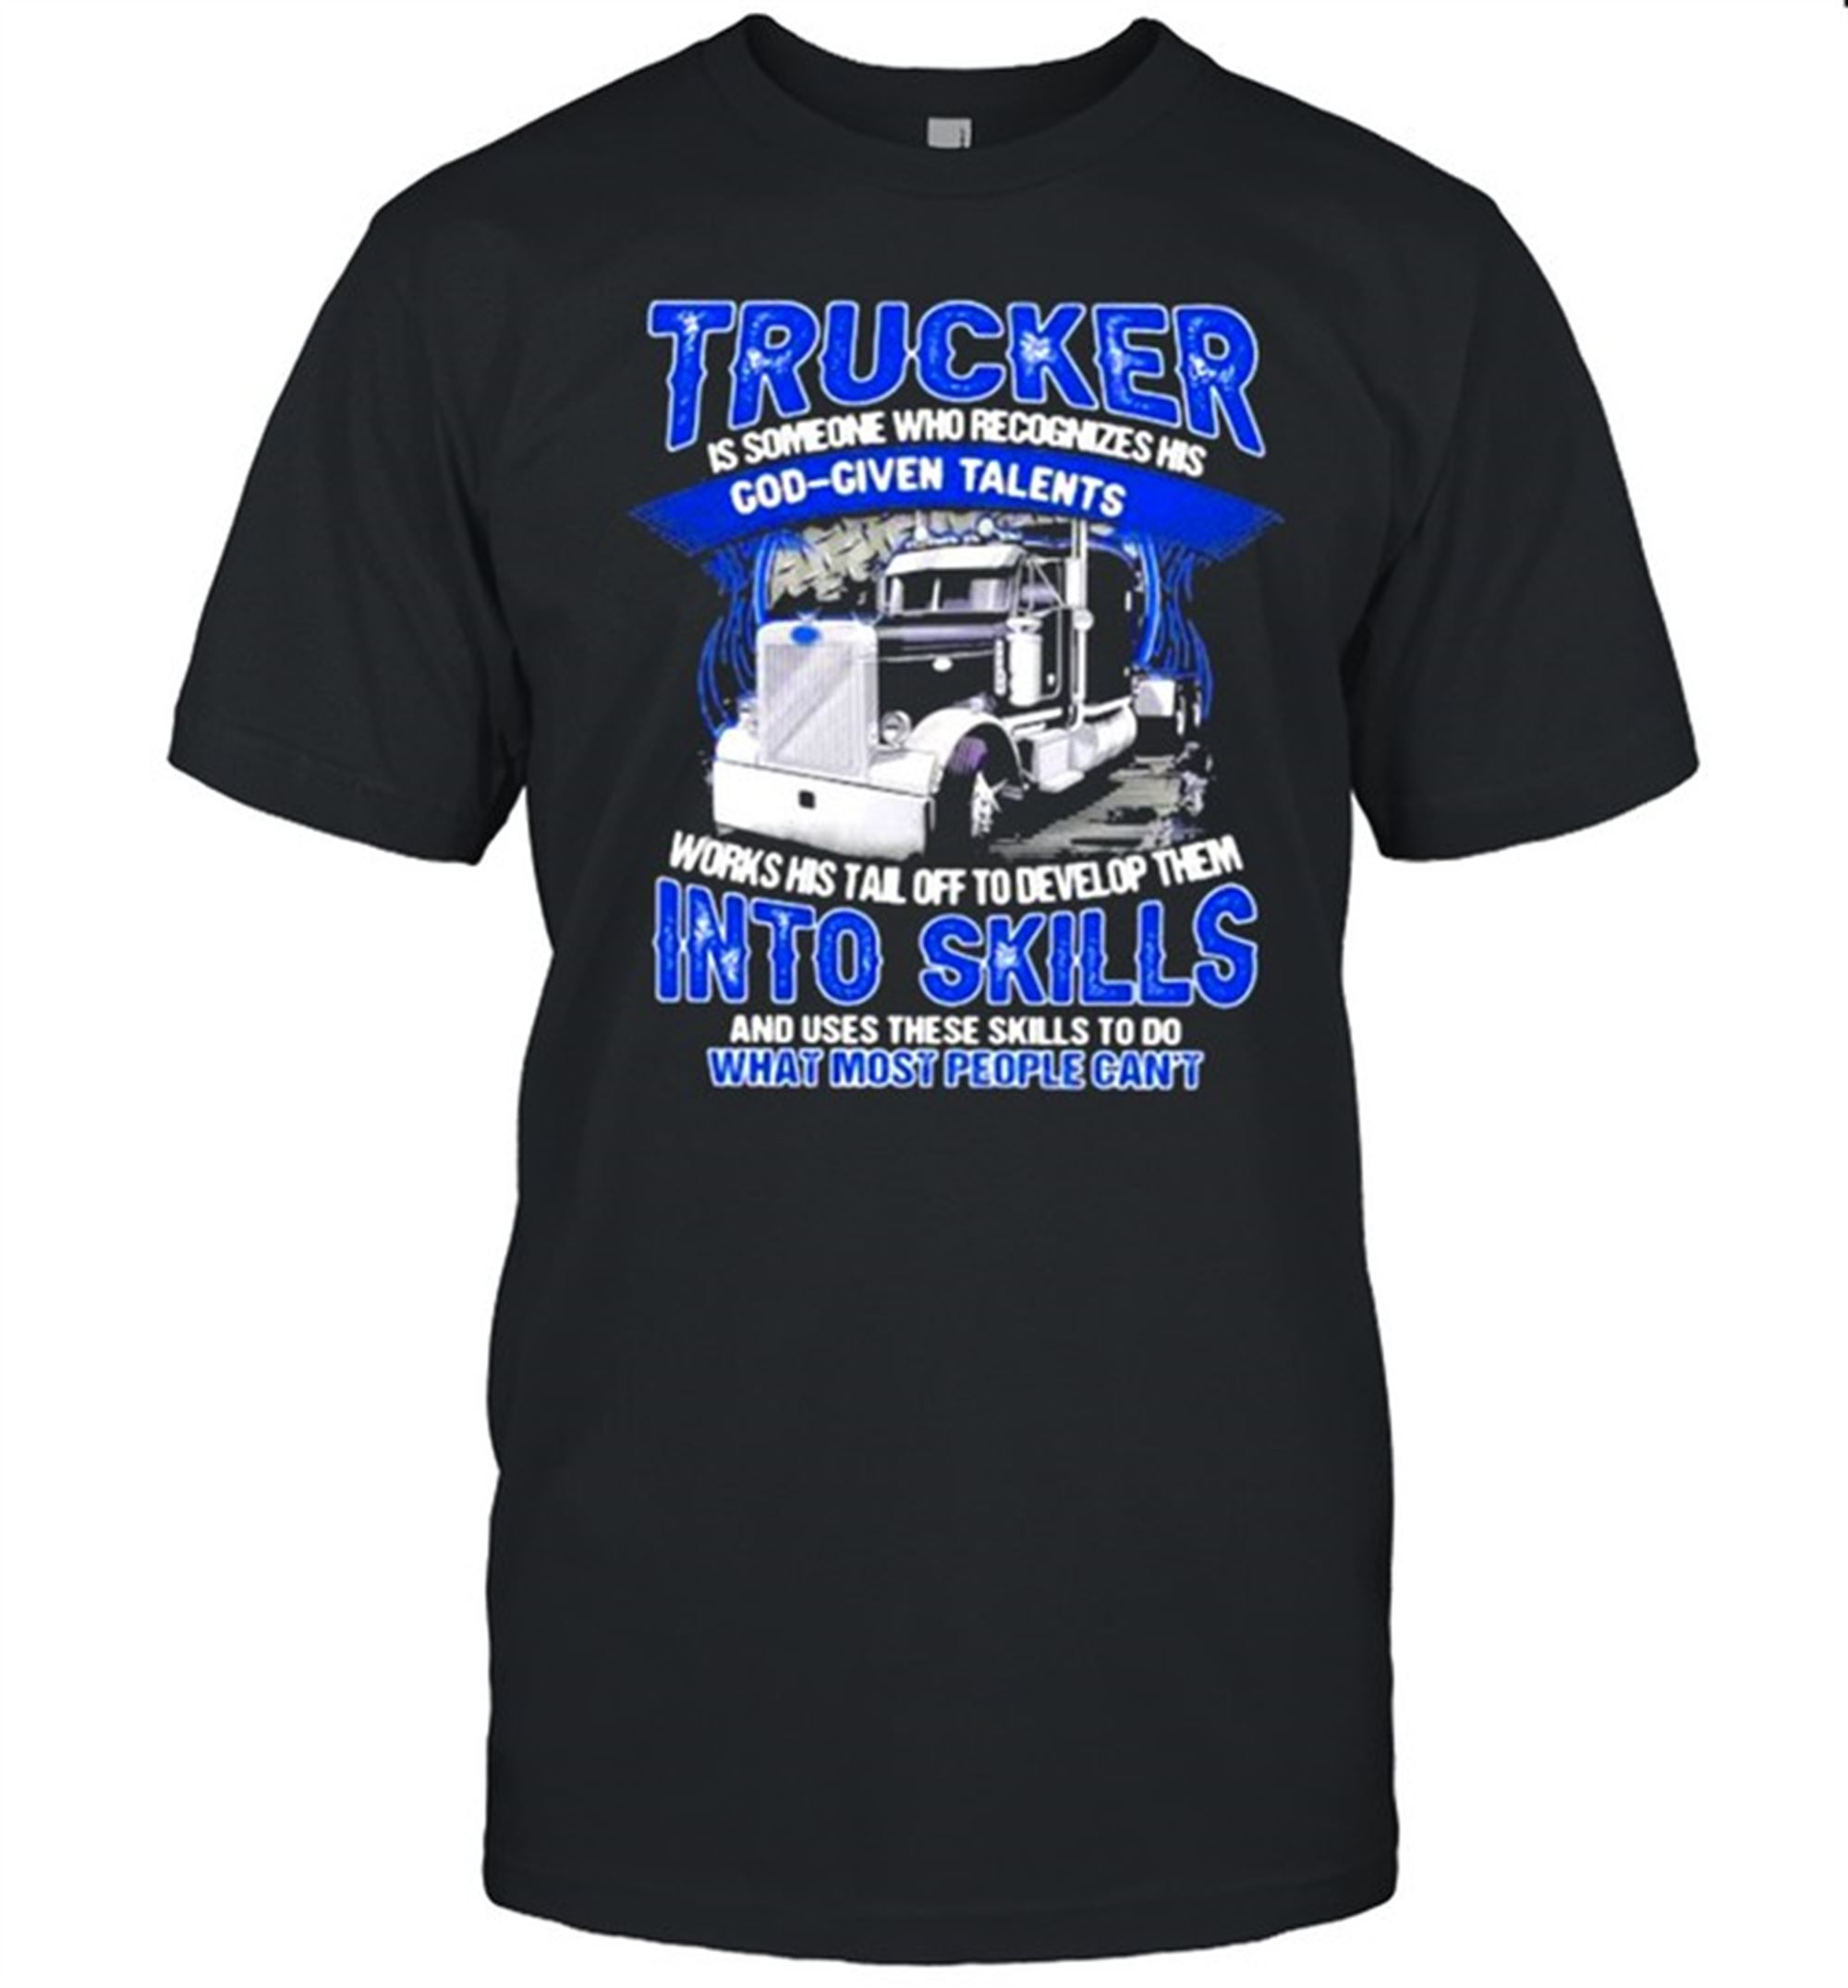 Terrific Tees Trucker Is Someone Who Recognizes His God Given Talents And Use These Skills To Do What Most People Cant Shirt Marvelous